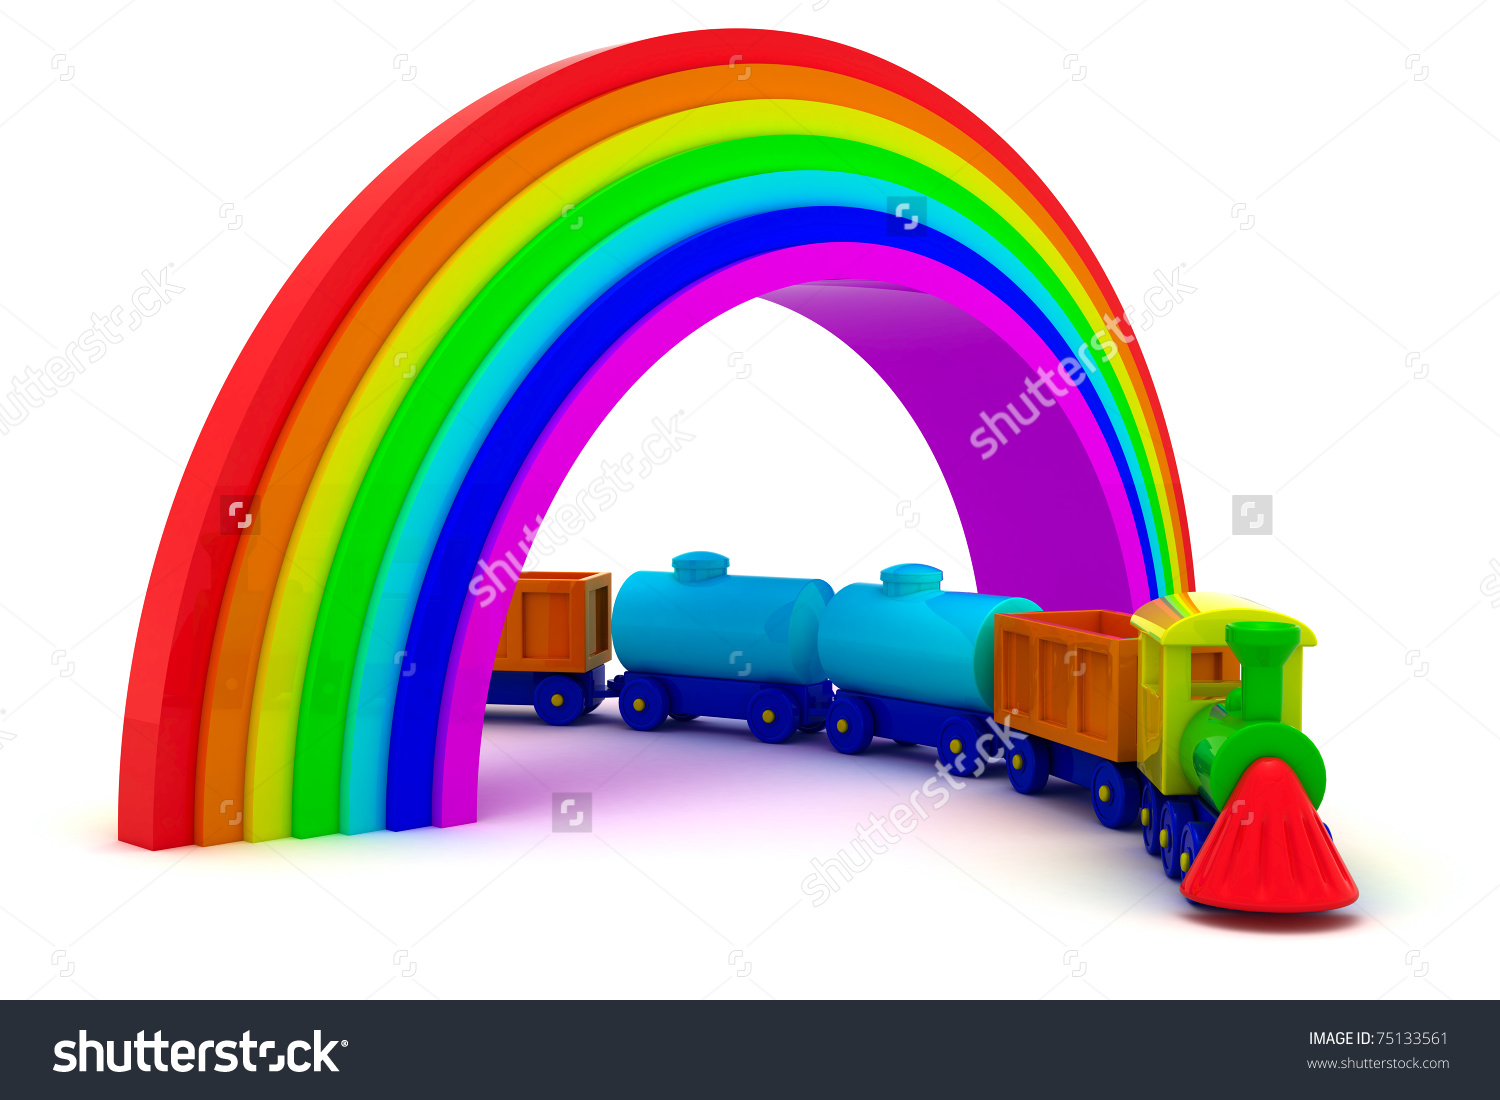 Toy Train Under Rainbow Bridge Stock Illustration 75133561.